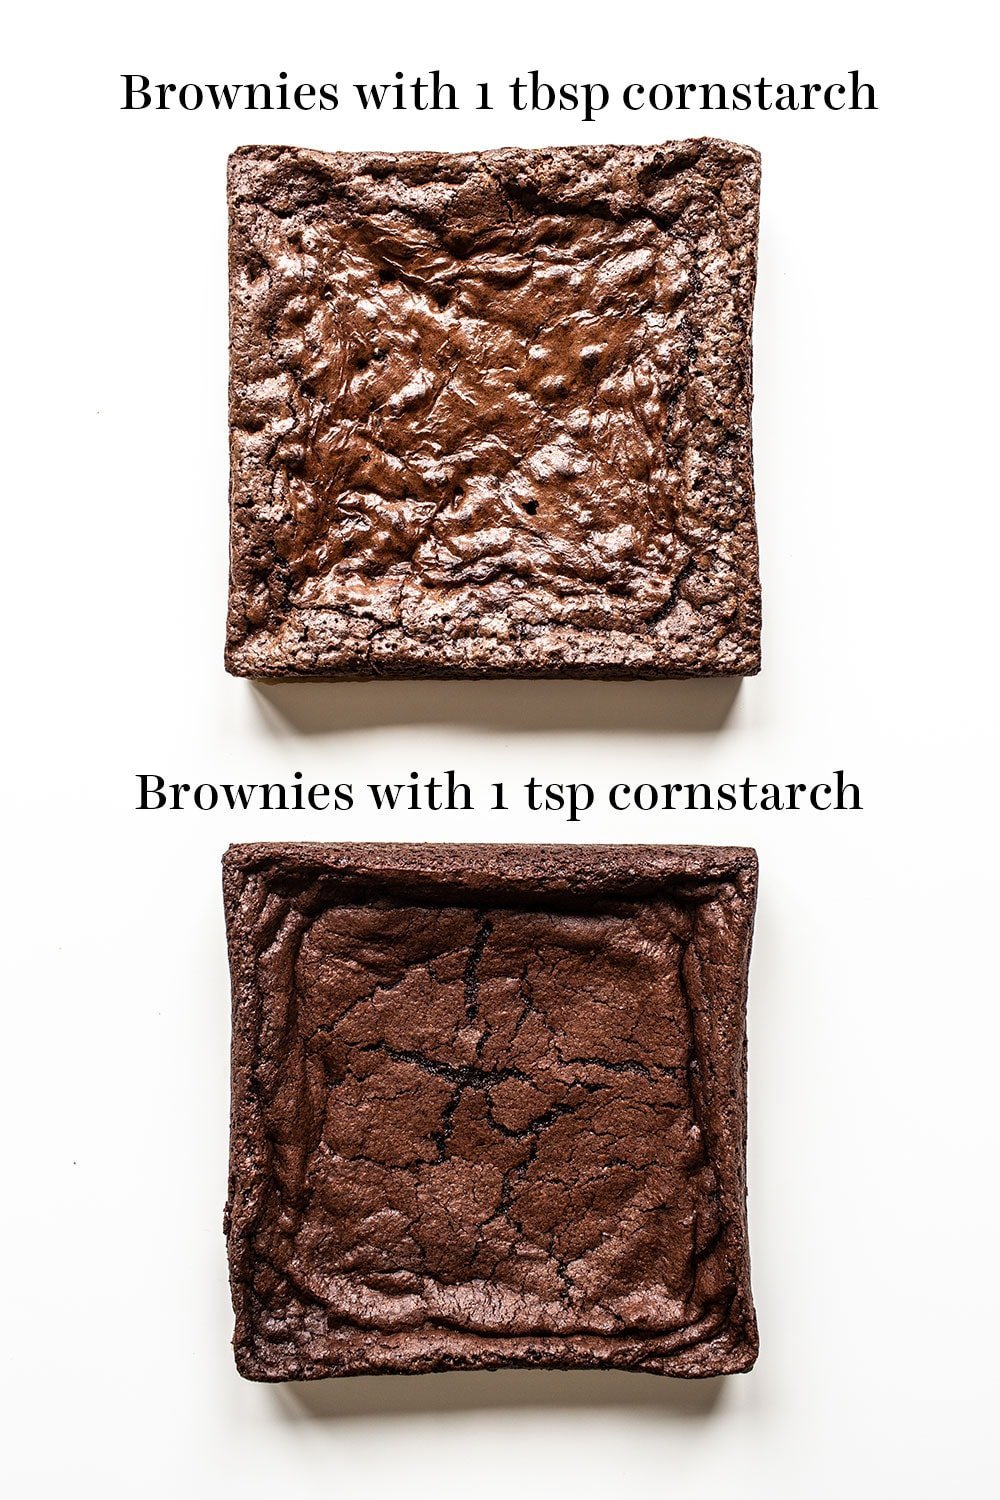 overhead comparison of brownies made with 1 tablespoon of cornstarch vs 1 teaspoon of cornstarch